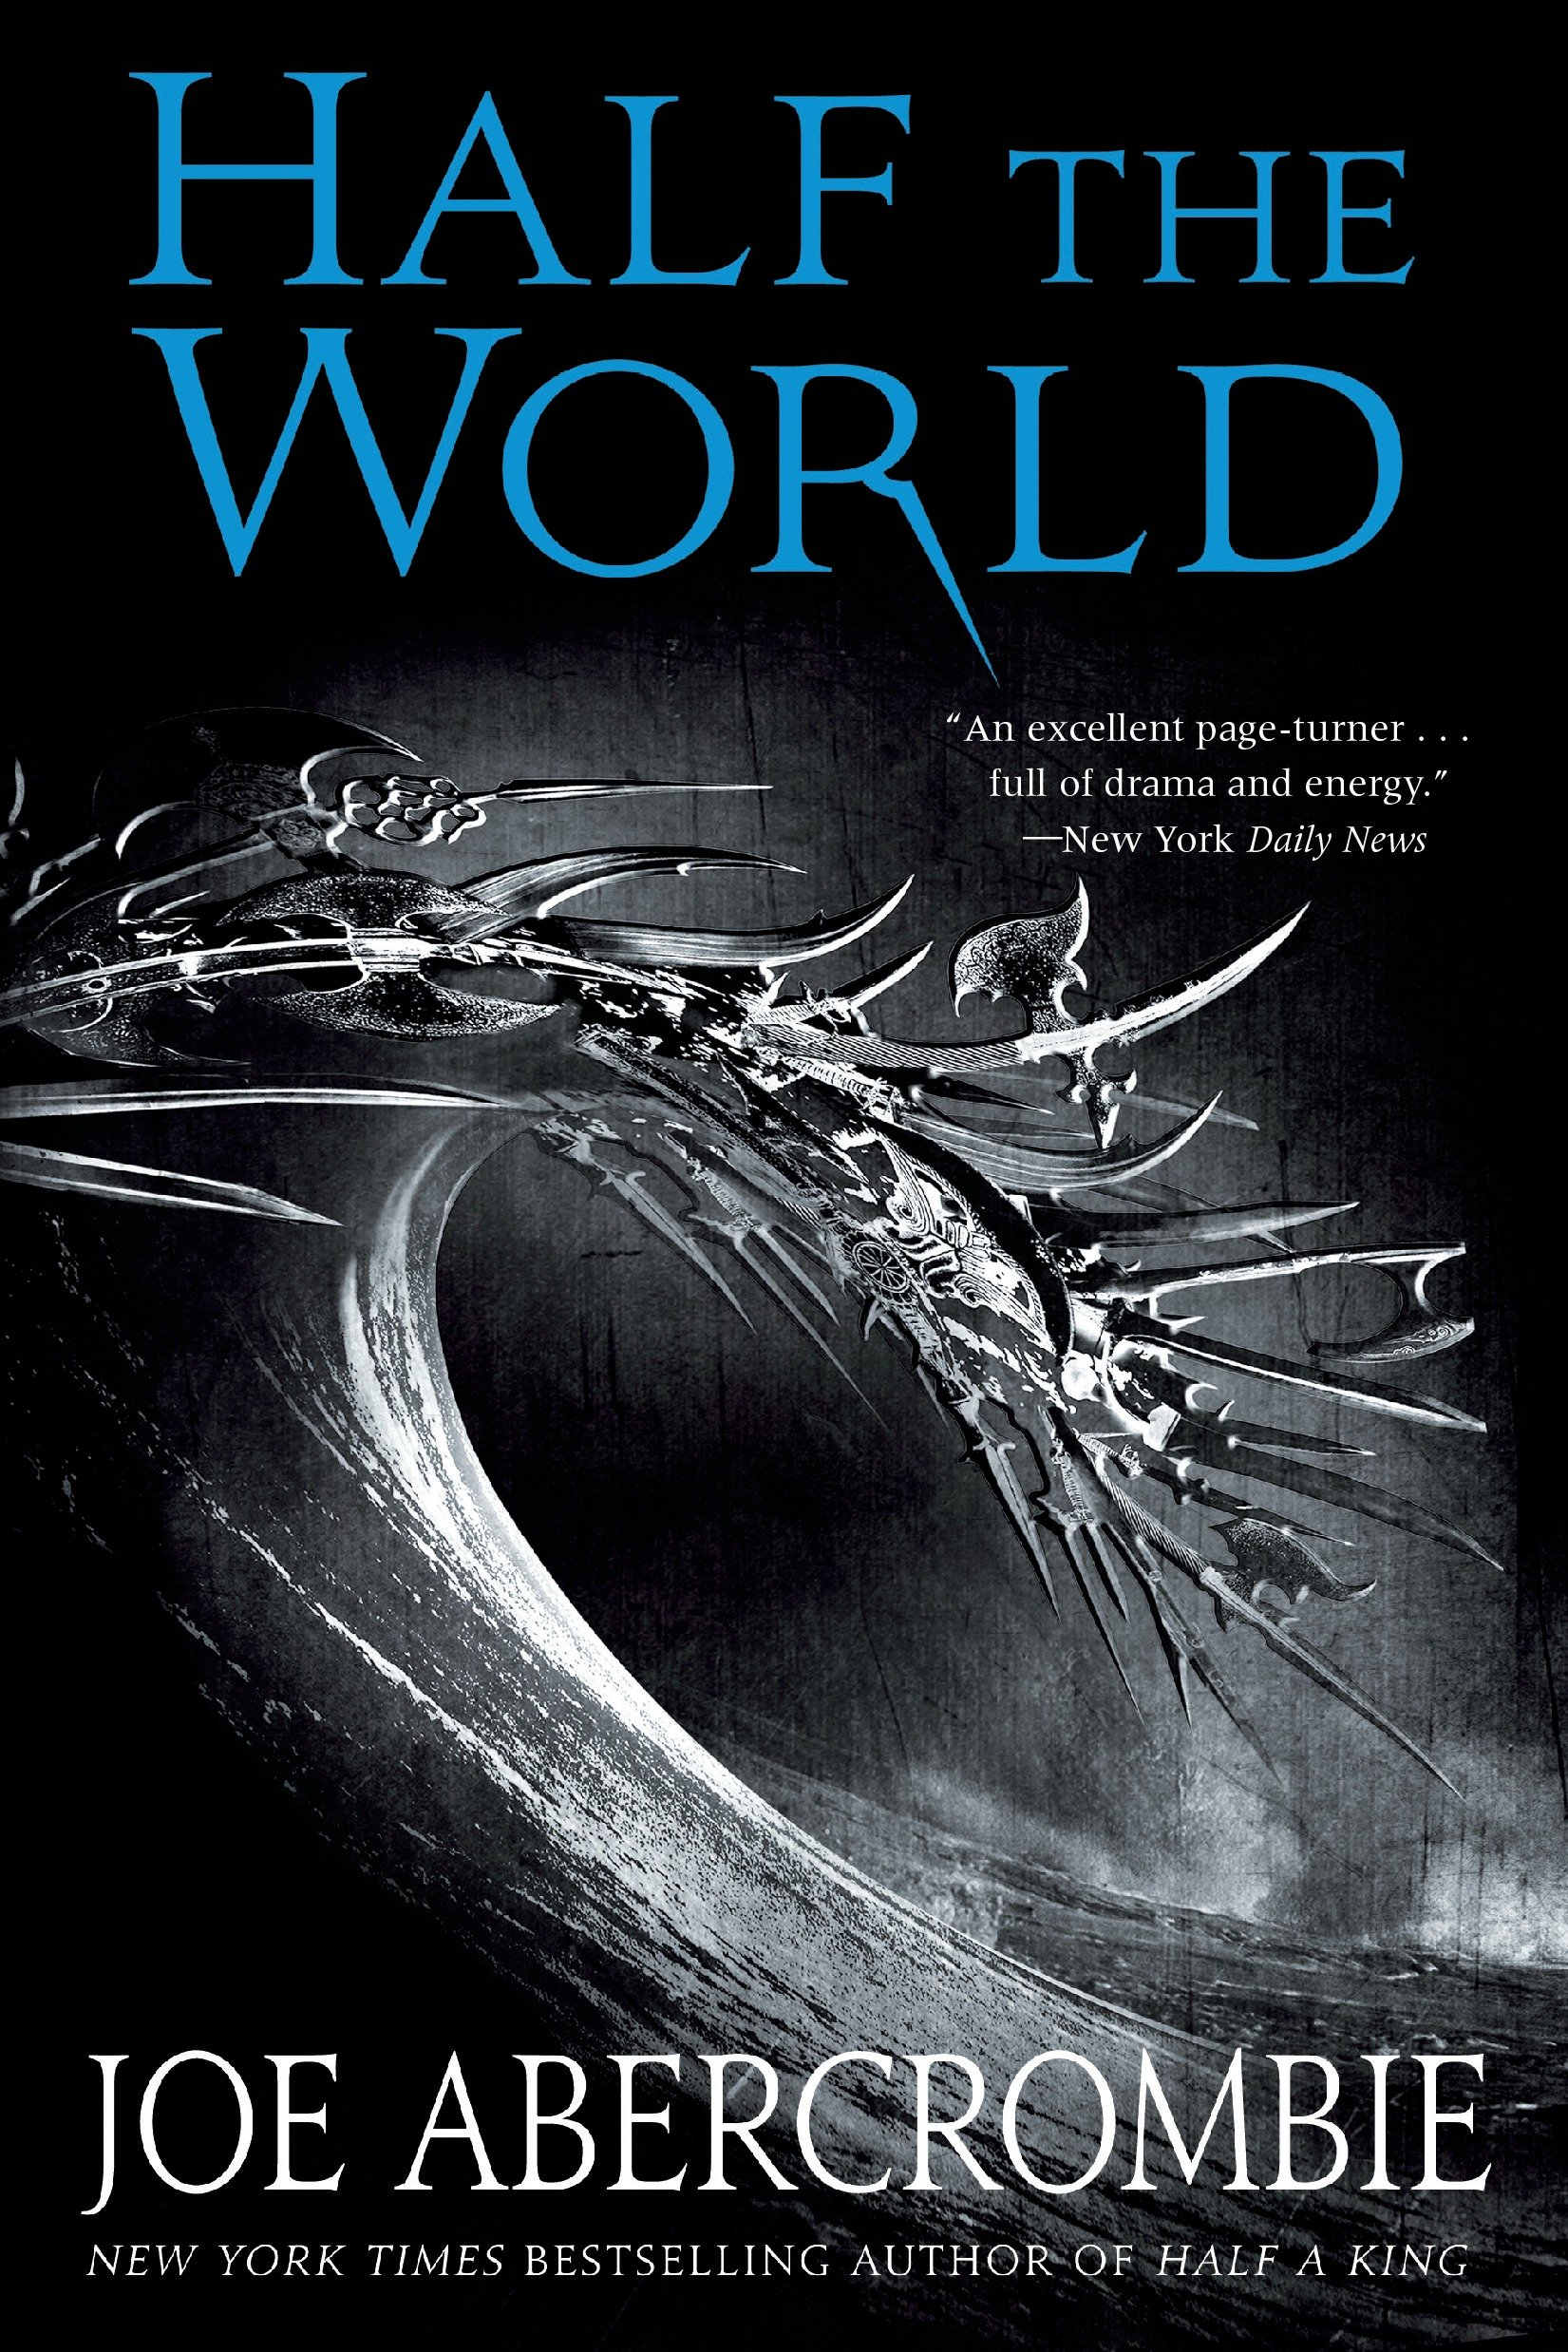 Half the world cover image